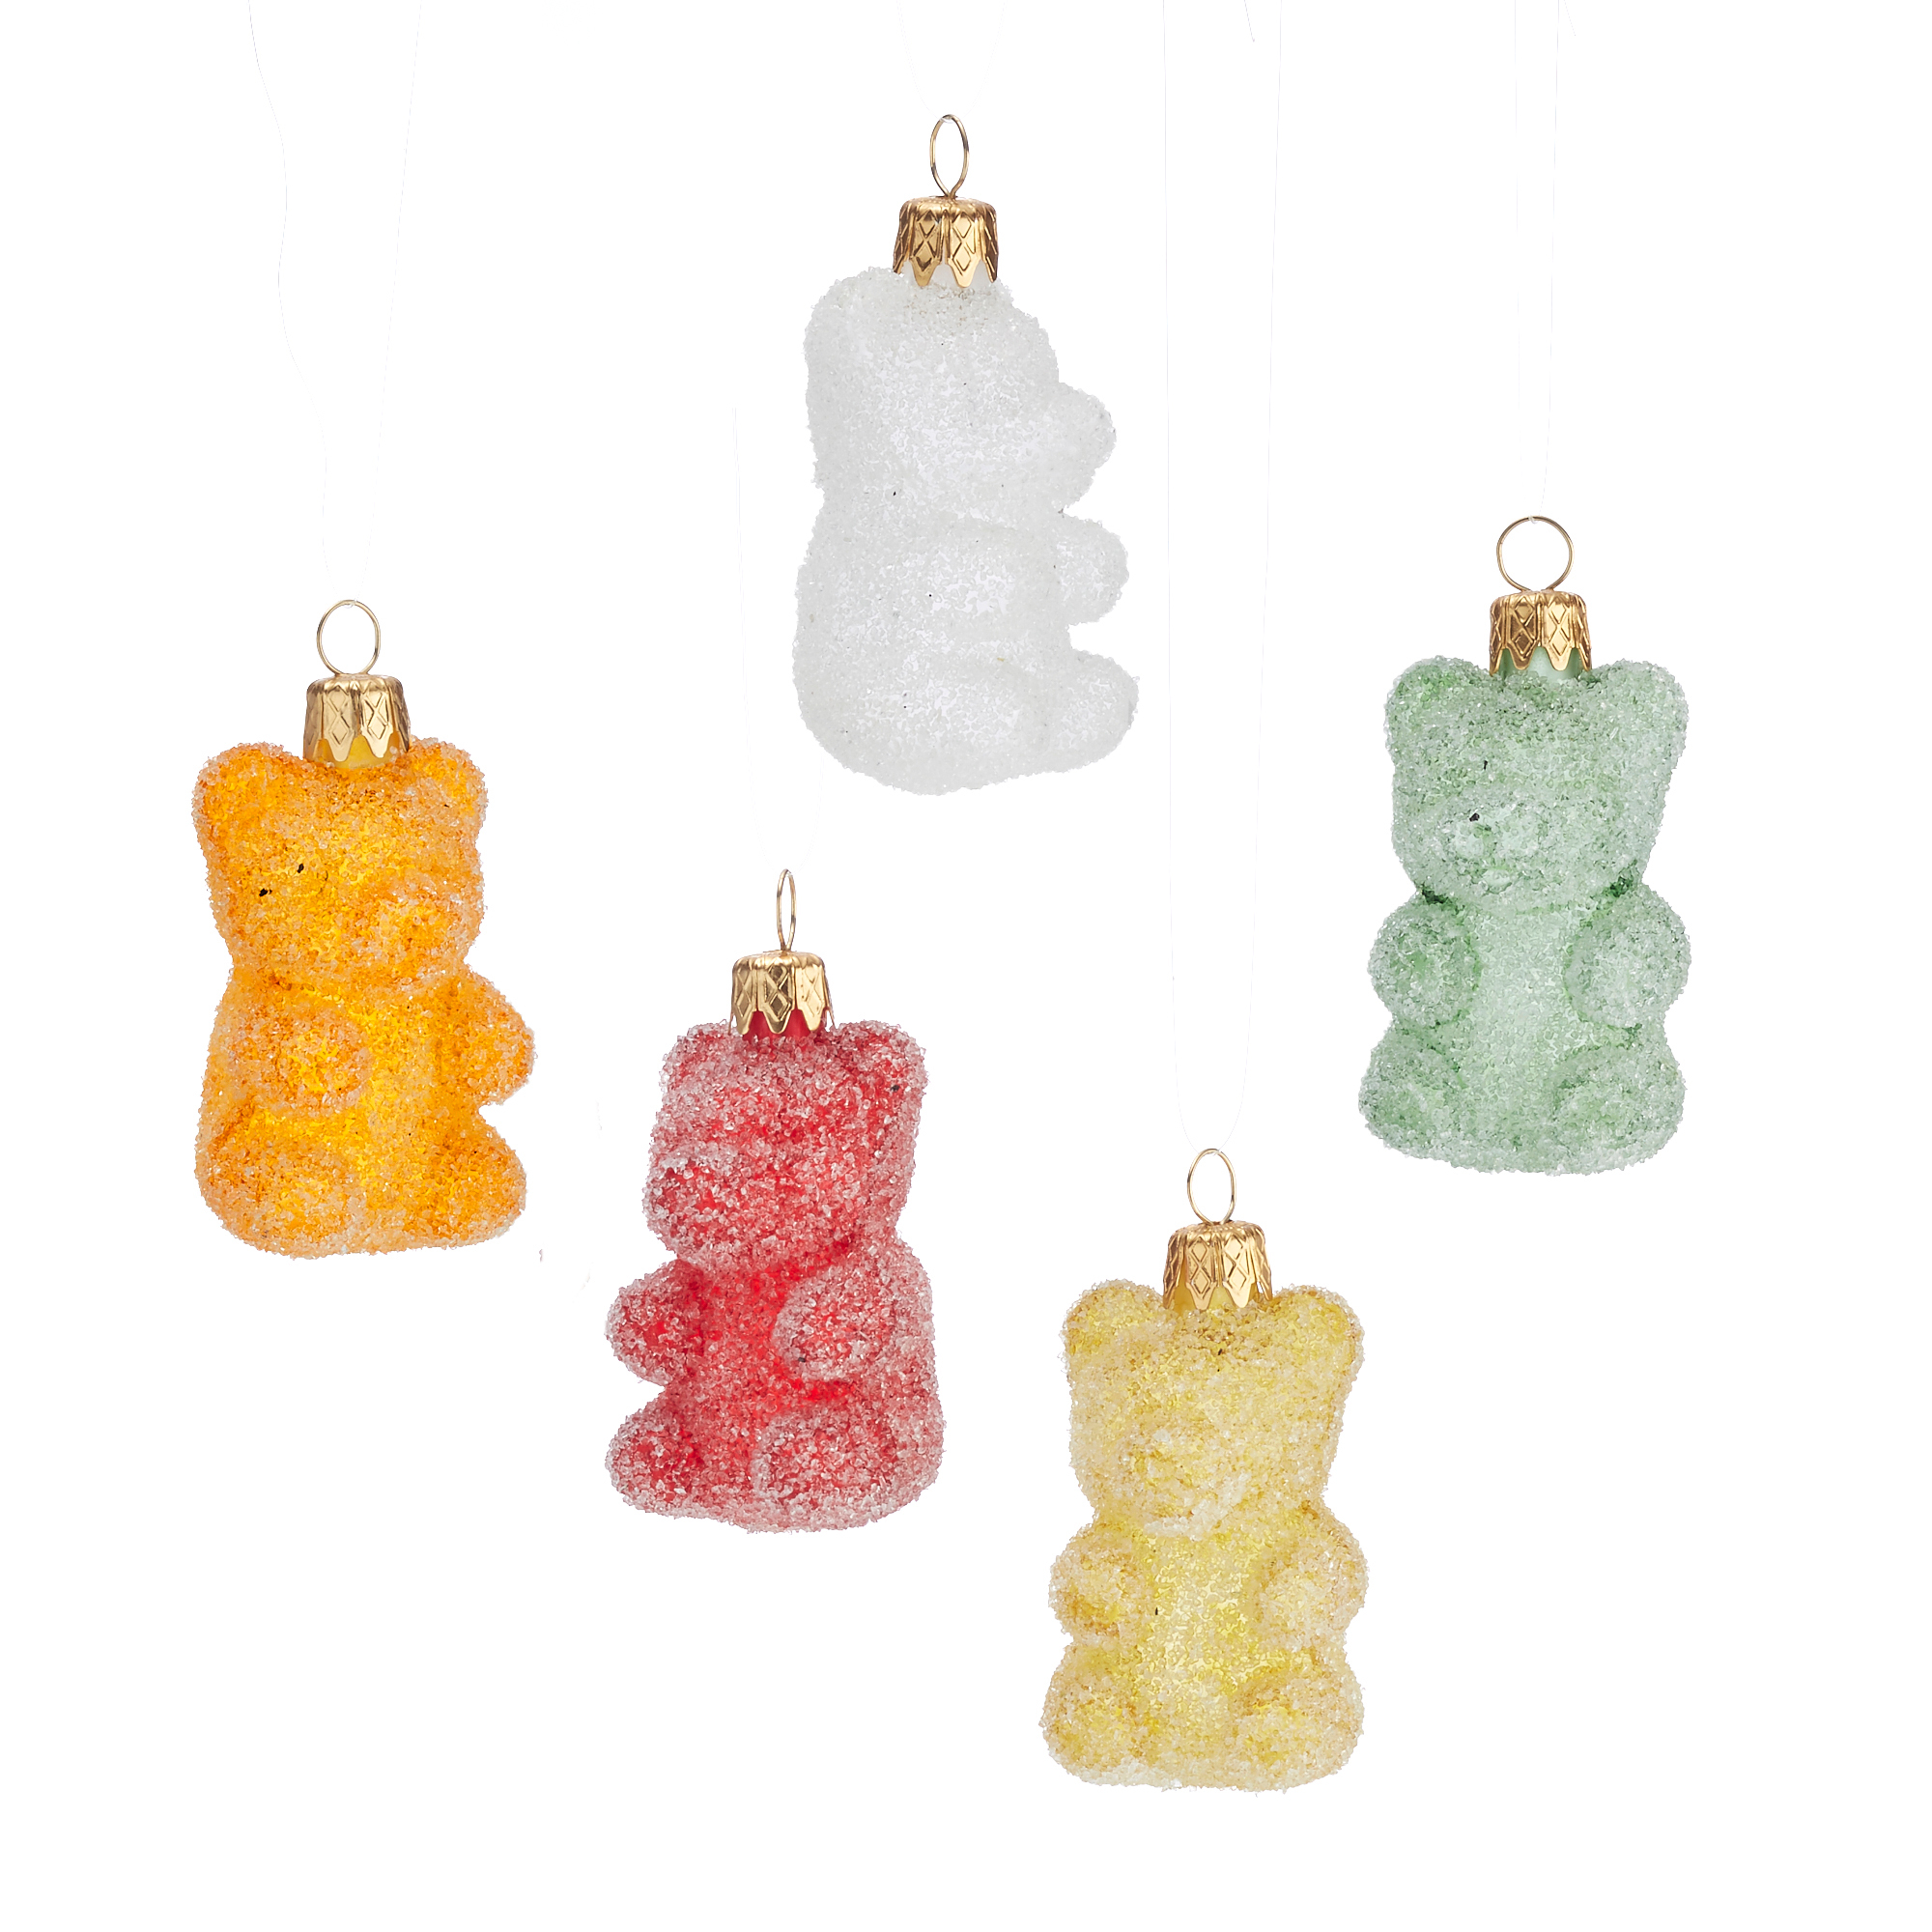 Frosted Gummi Bears Christmas Ornaments, Set of 5